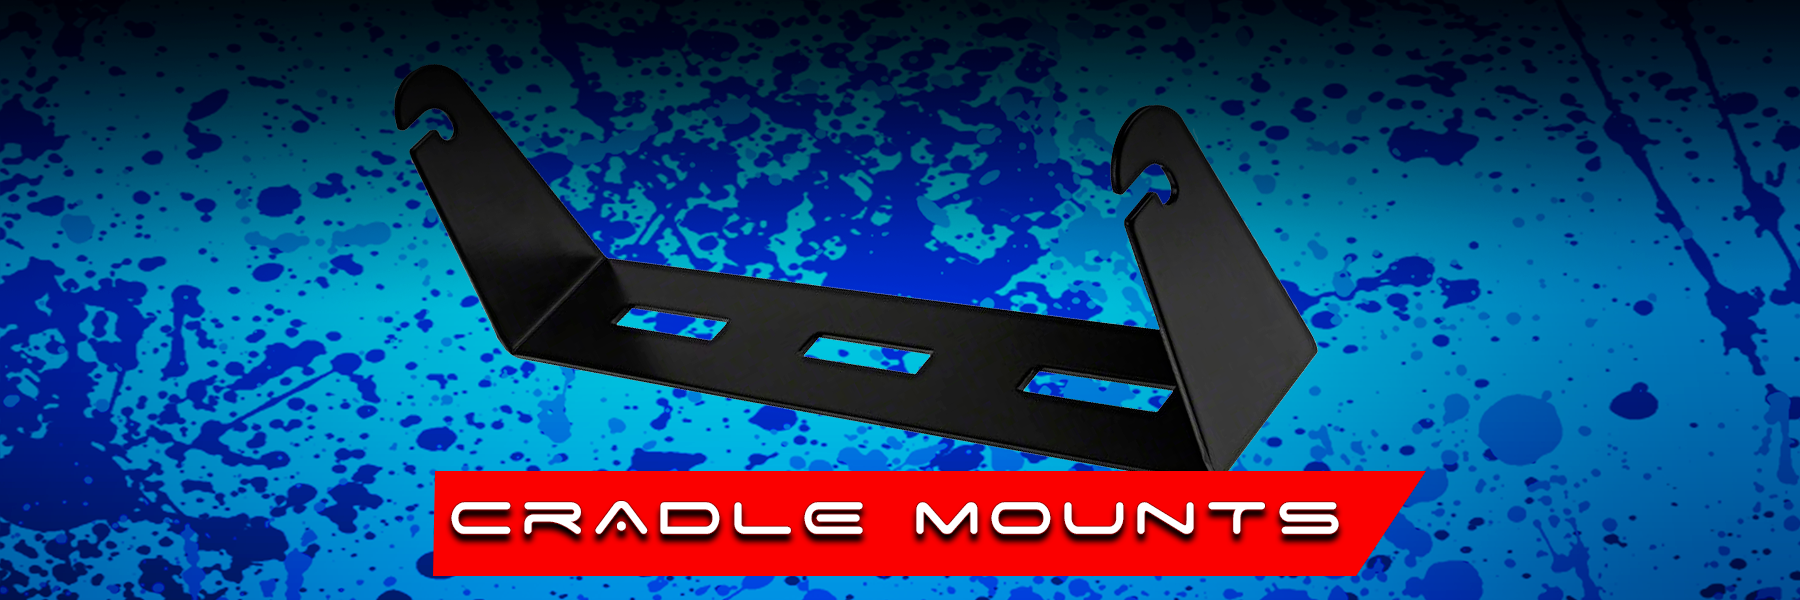 CRADLE MOUNTS